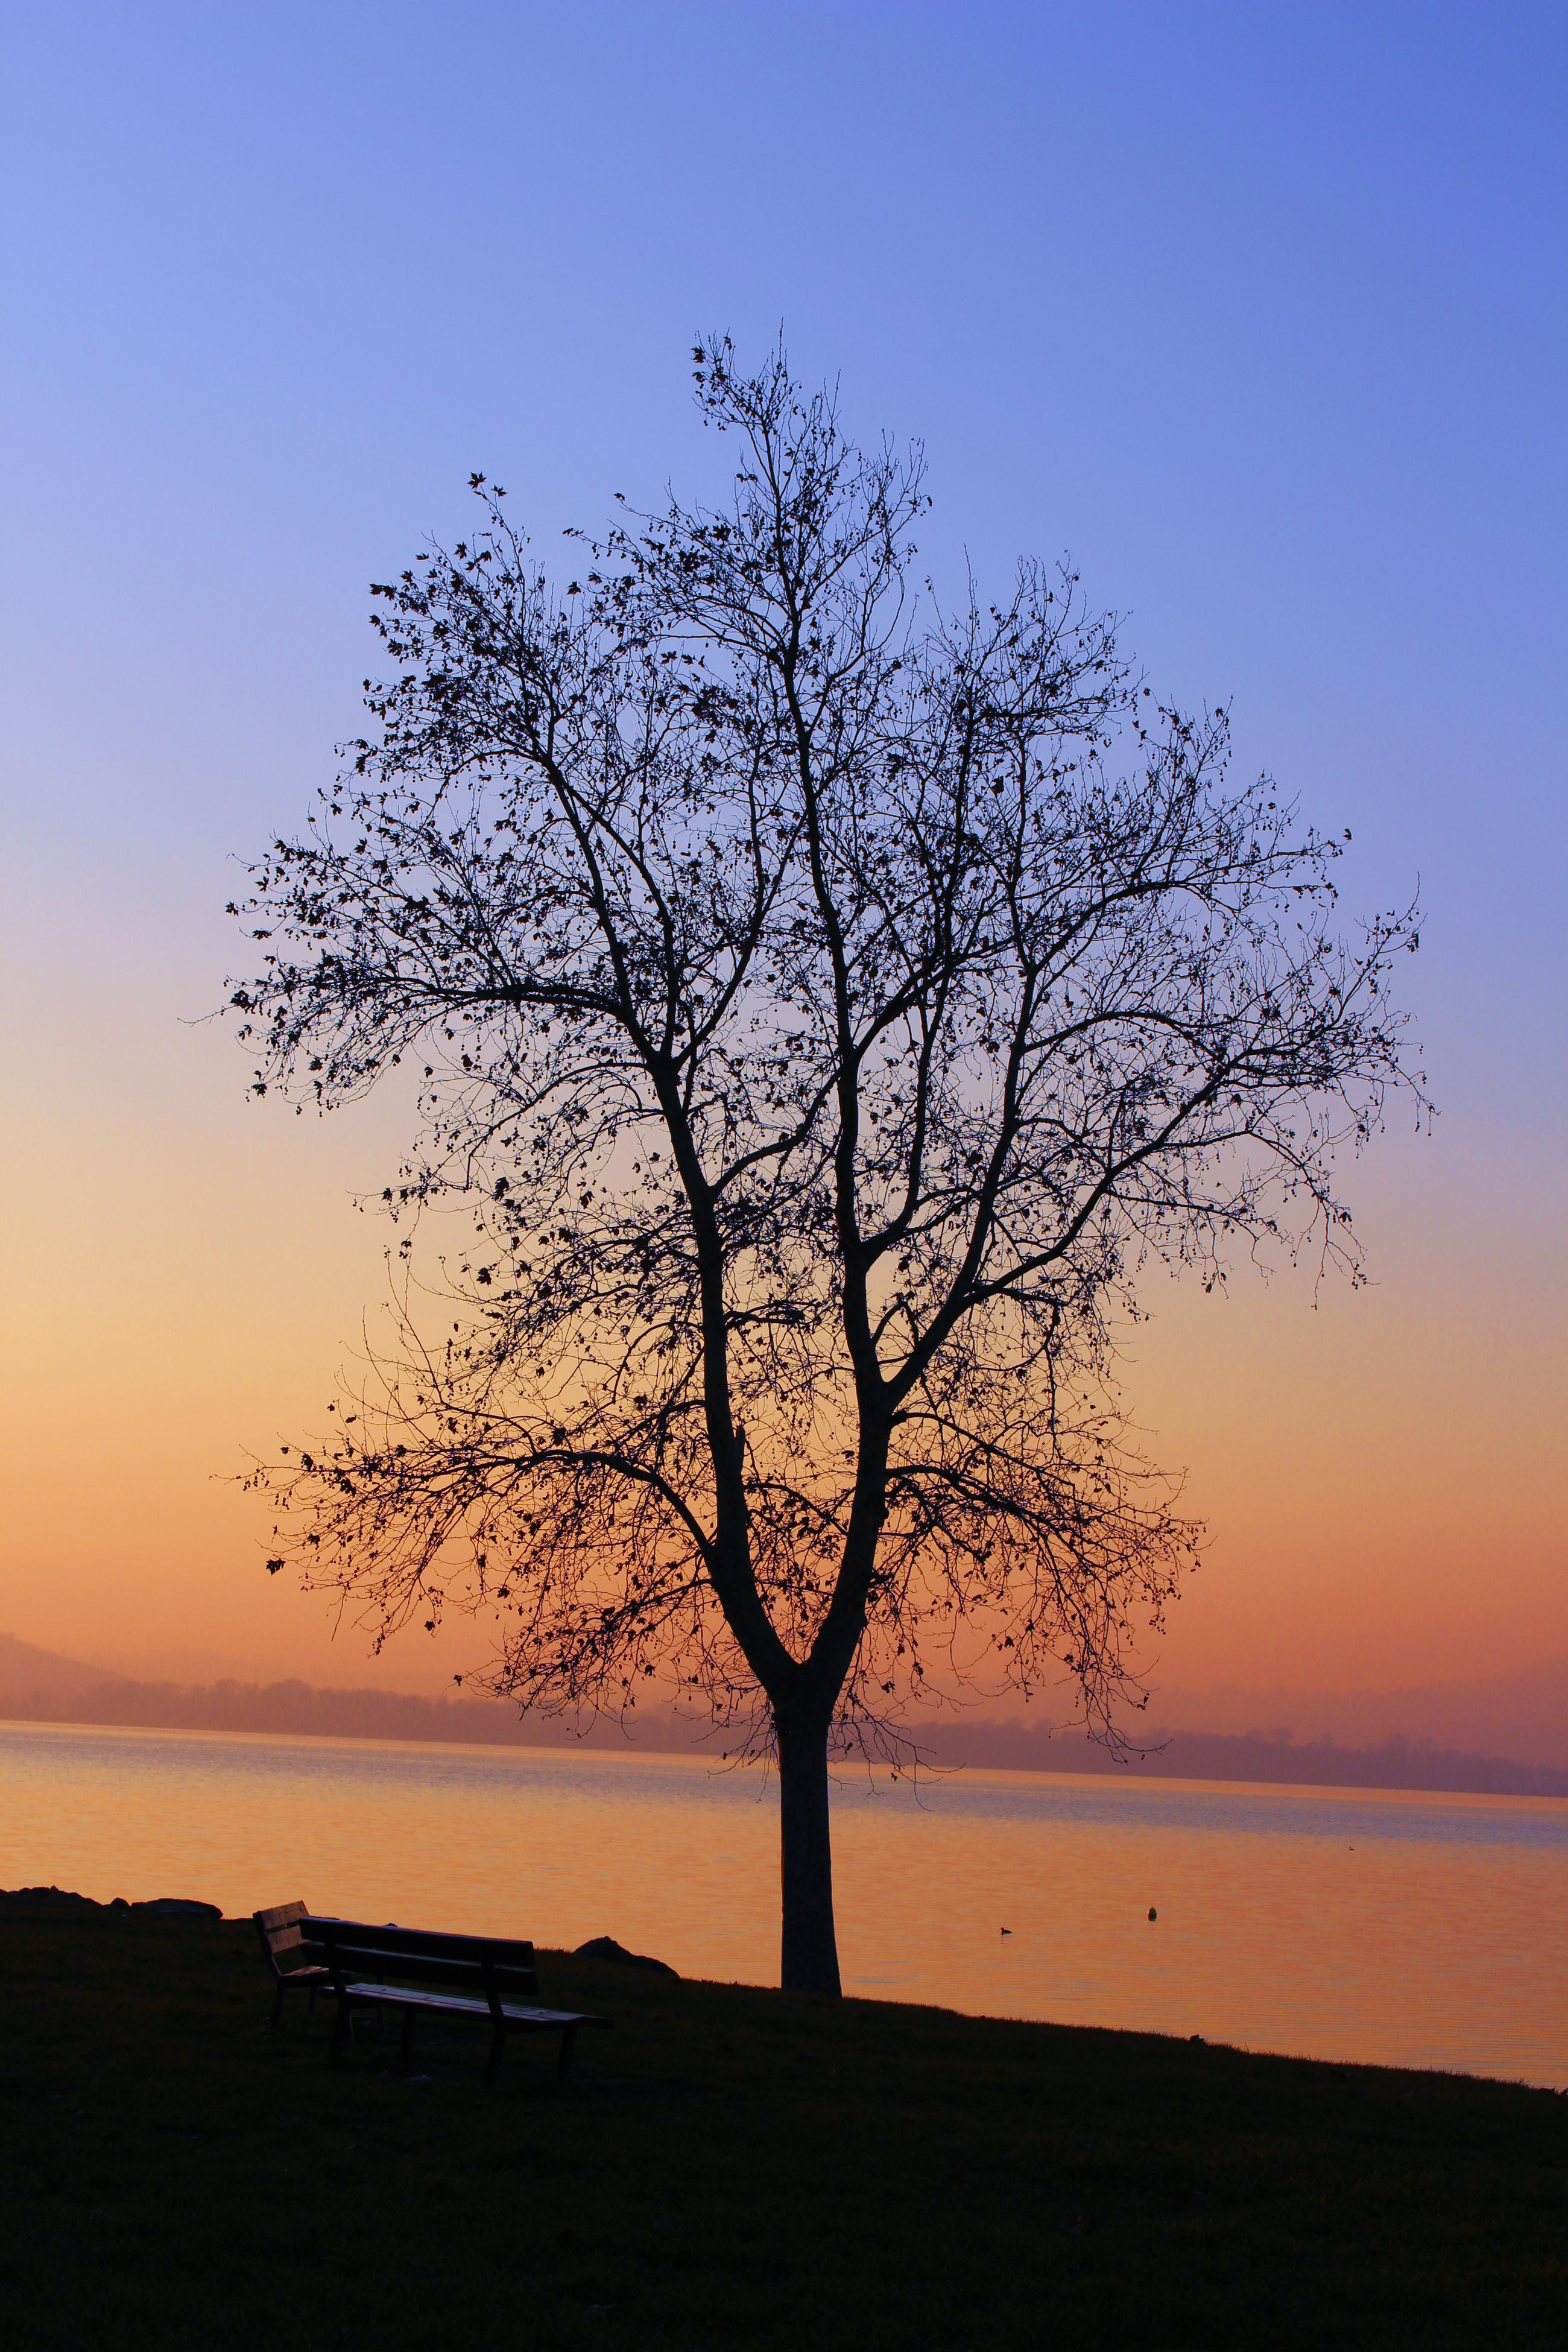 sea, sunset, horizon over water, water, nature, beauty in nature, tranquil scene, tranquility, no people, sky, scenics, beach, outdoors, day